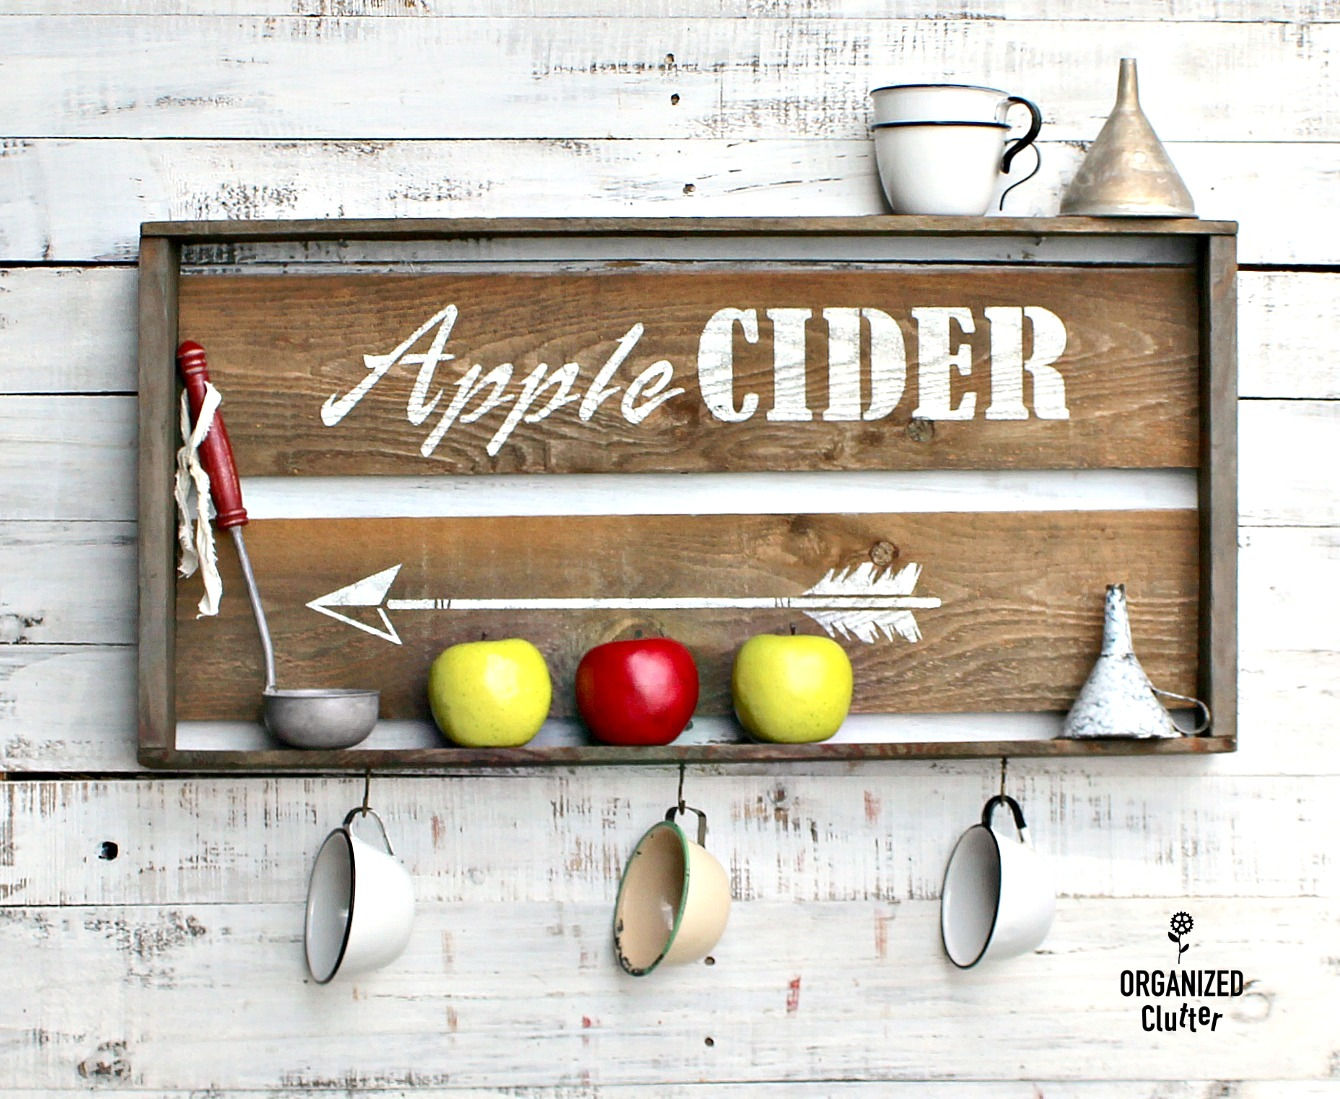 Stenciled fall Apple Cider crate shelf by Organized Clutter, featured on Funky Junk Interiors